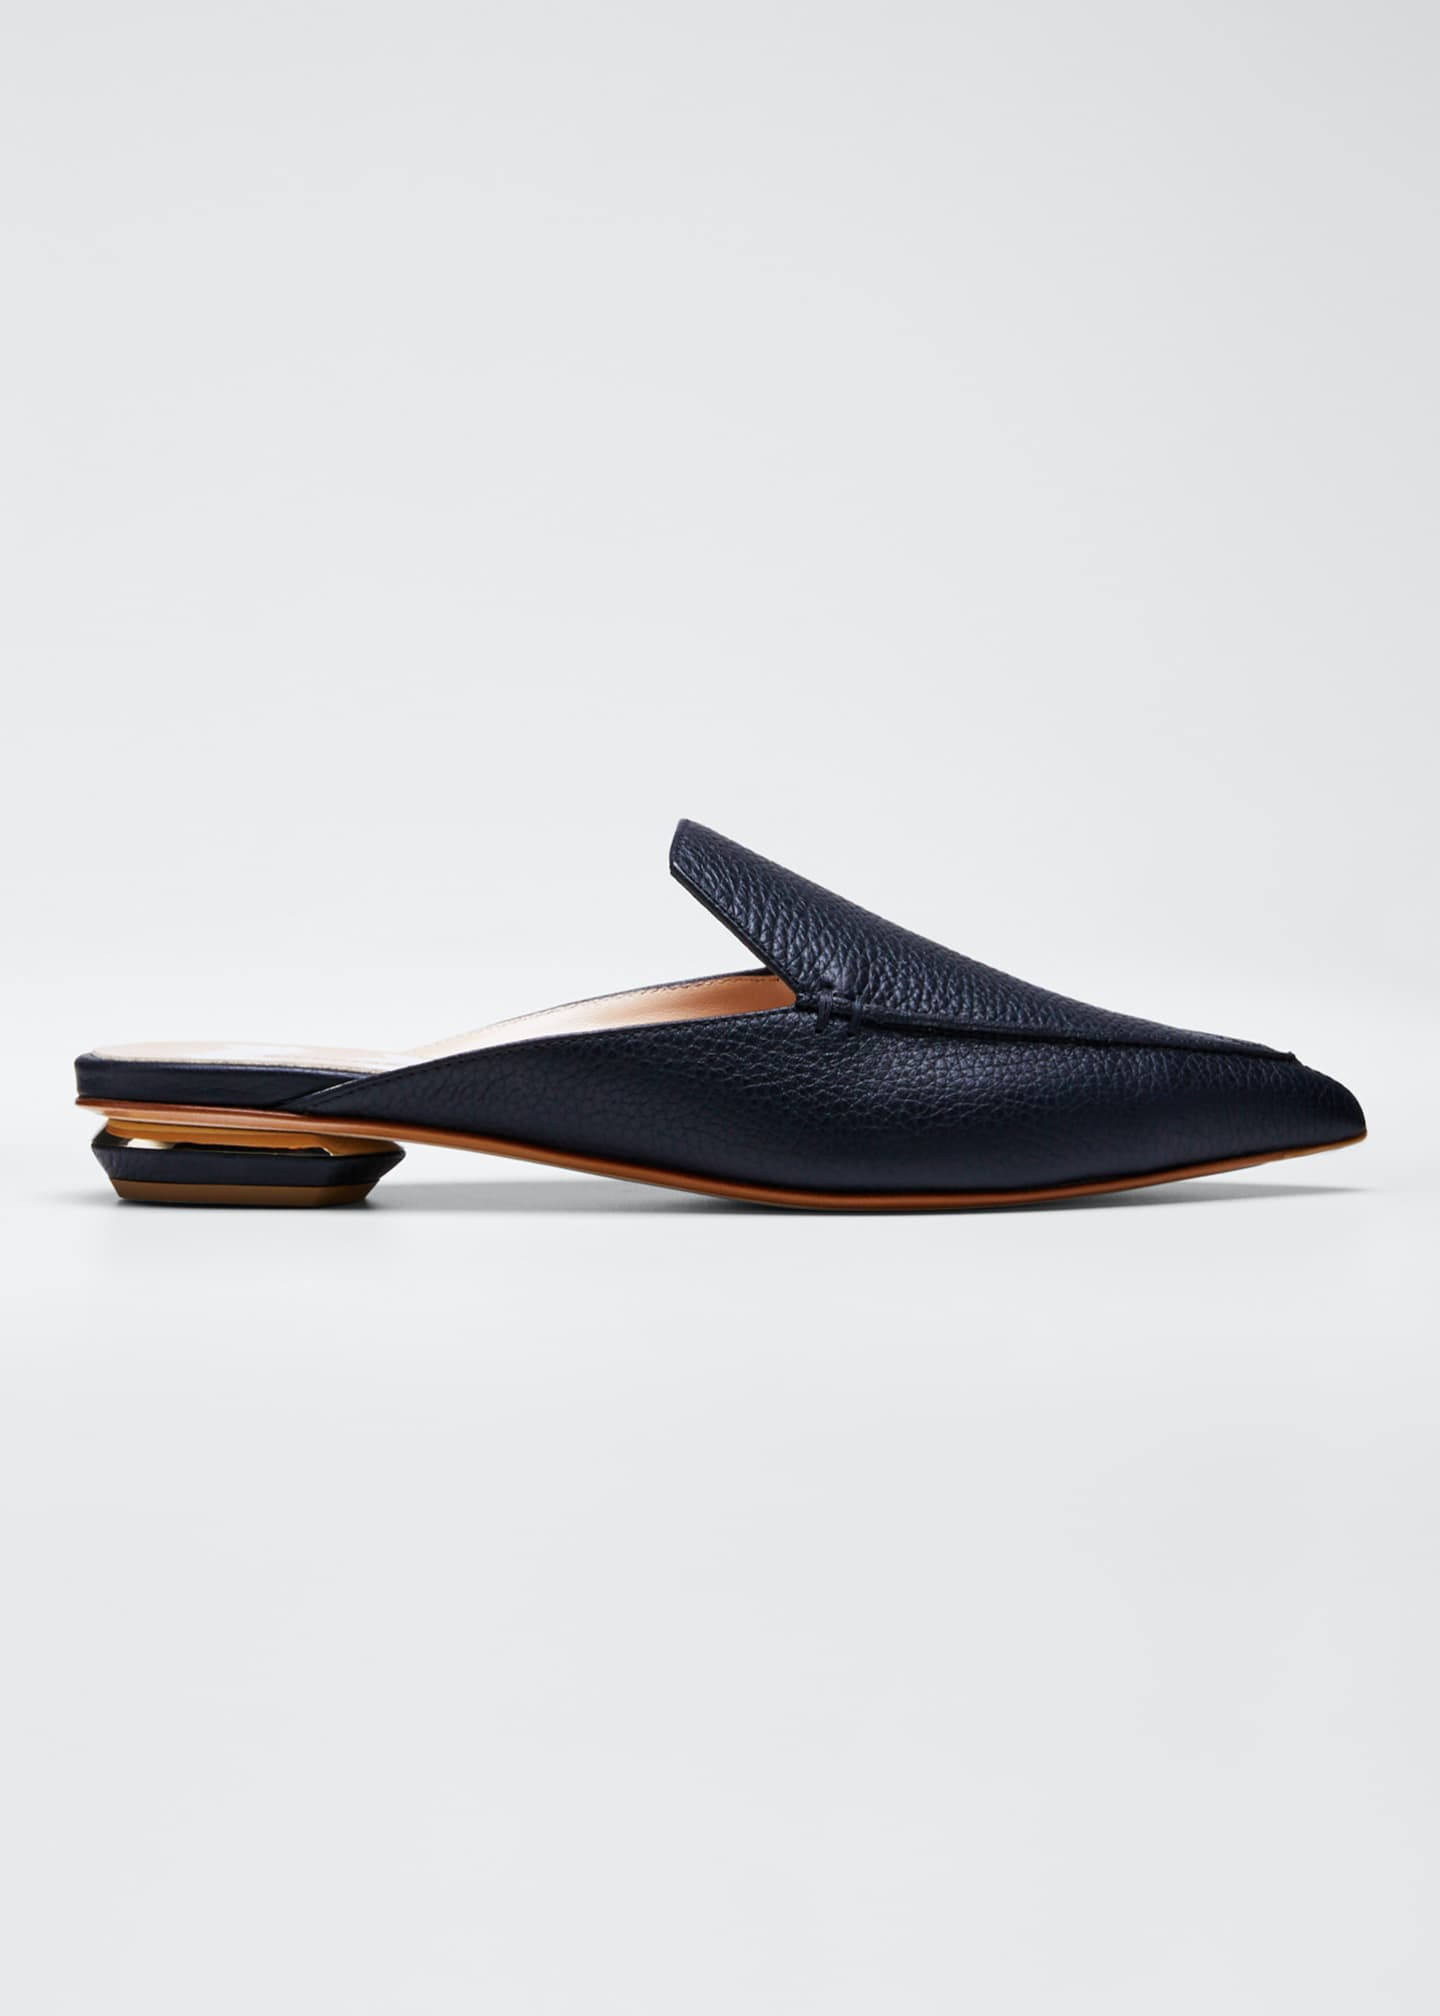 Nicholas Kirkwood Beya Leather Mule Slide